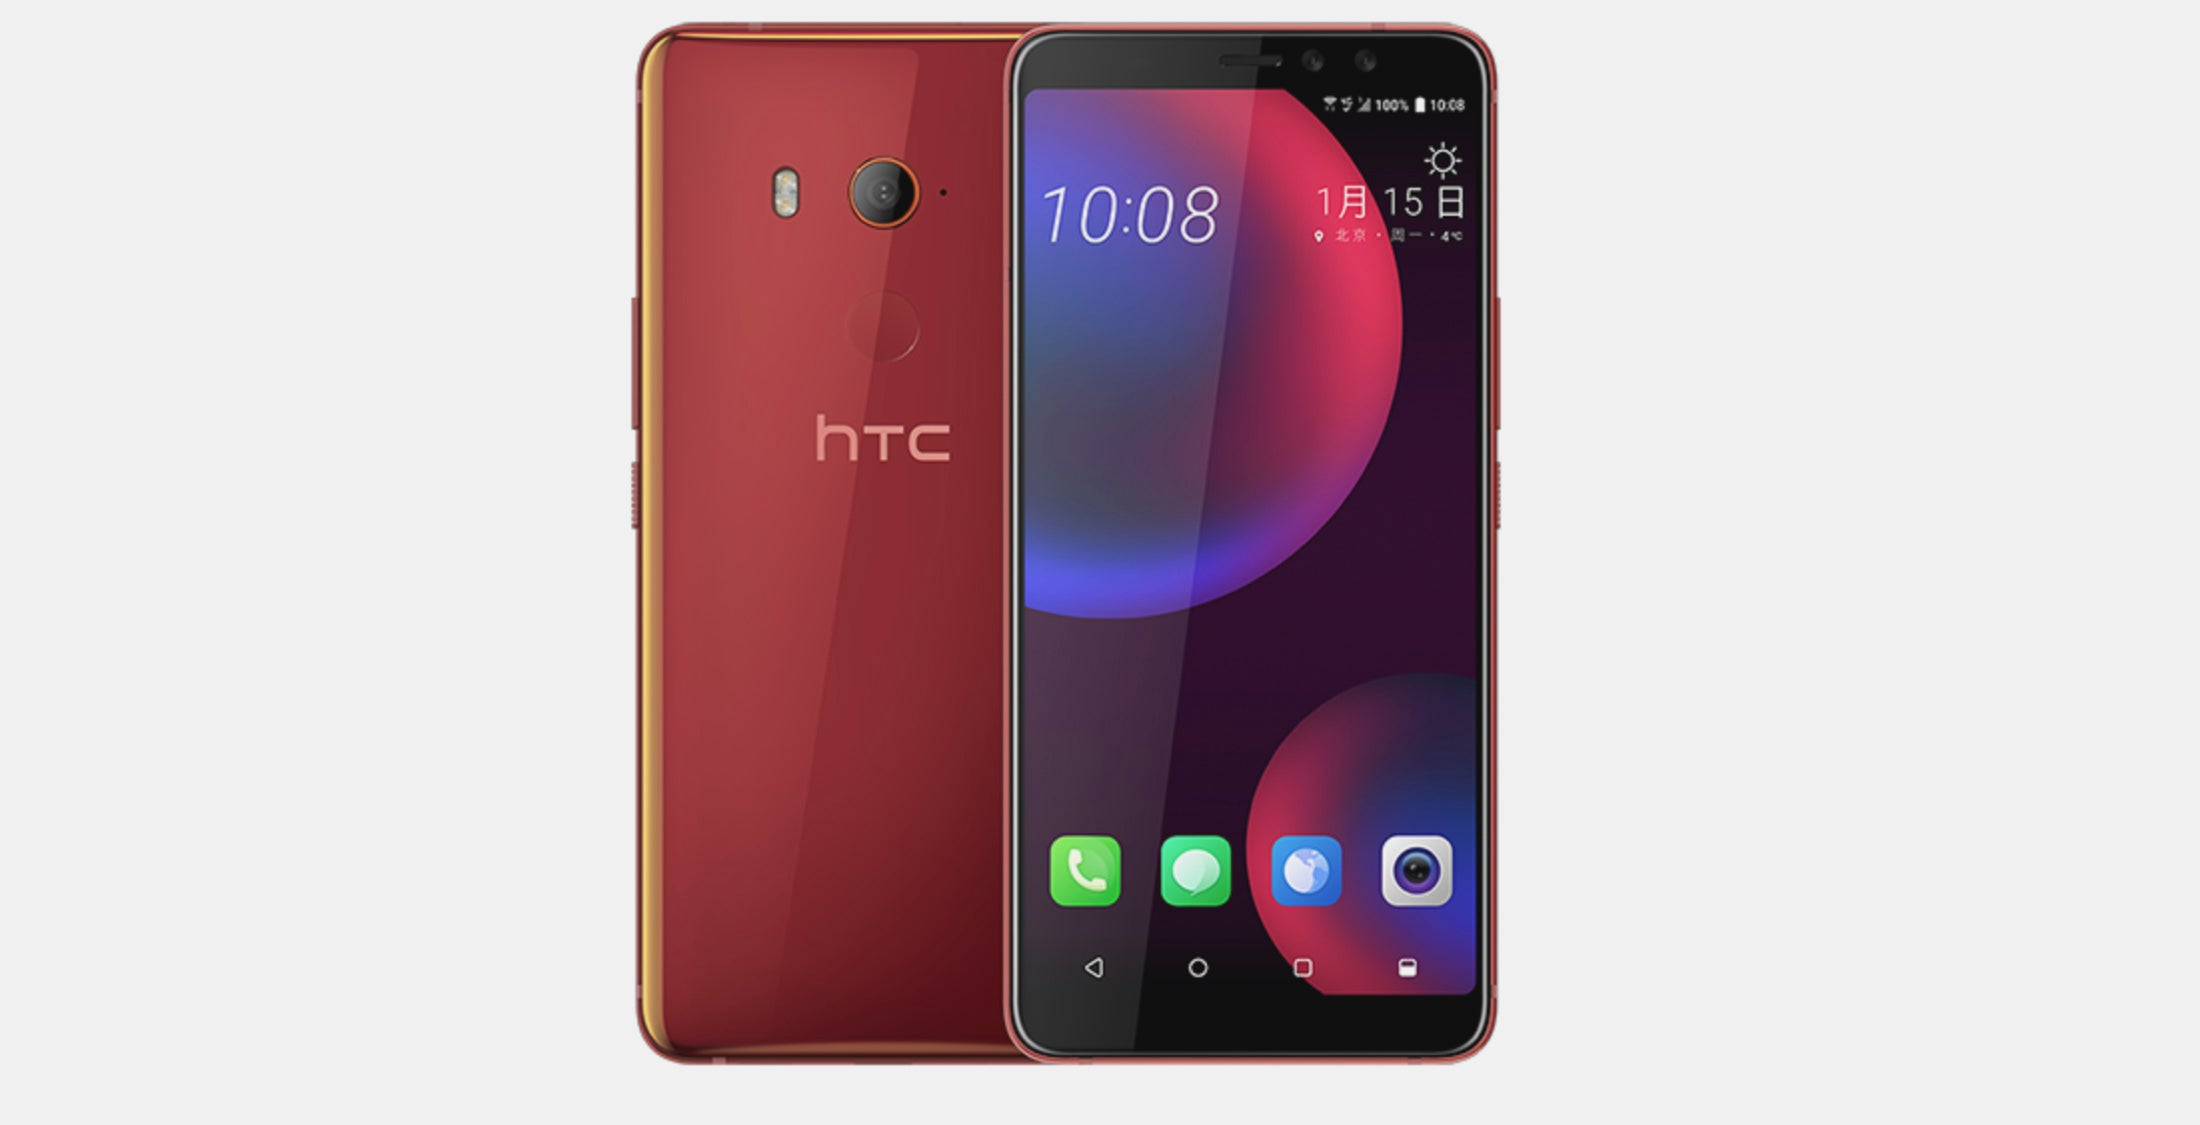 All Eyes On Htc As New U11 Variant Tipped For January 15